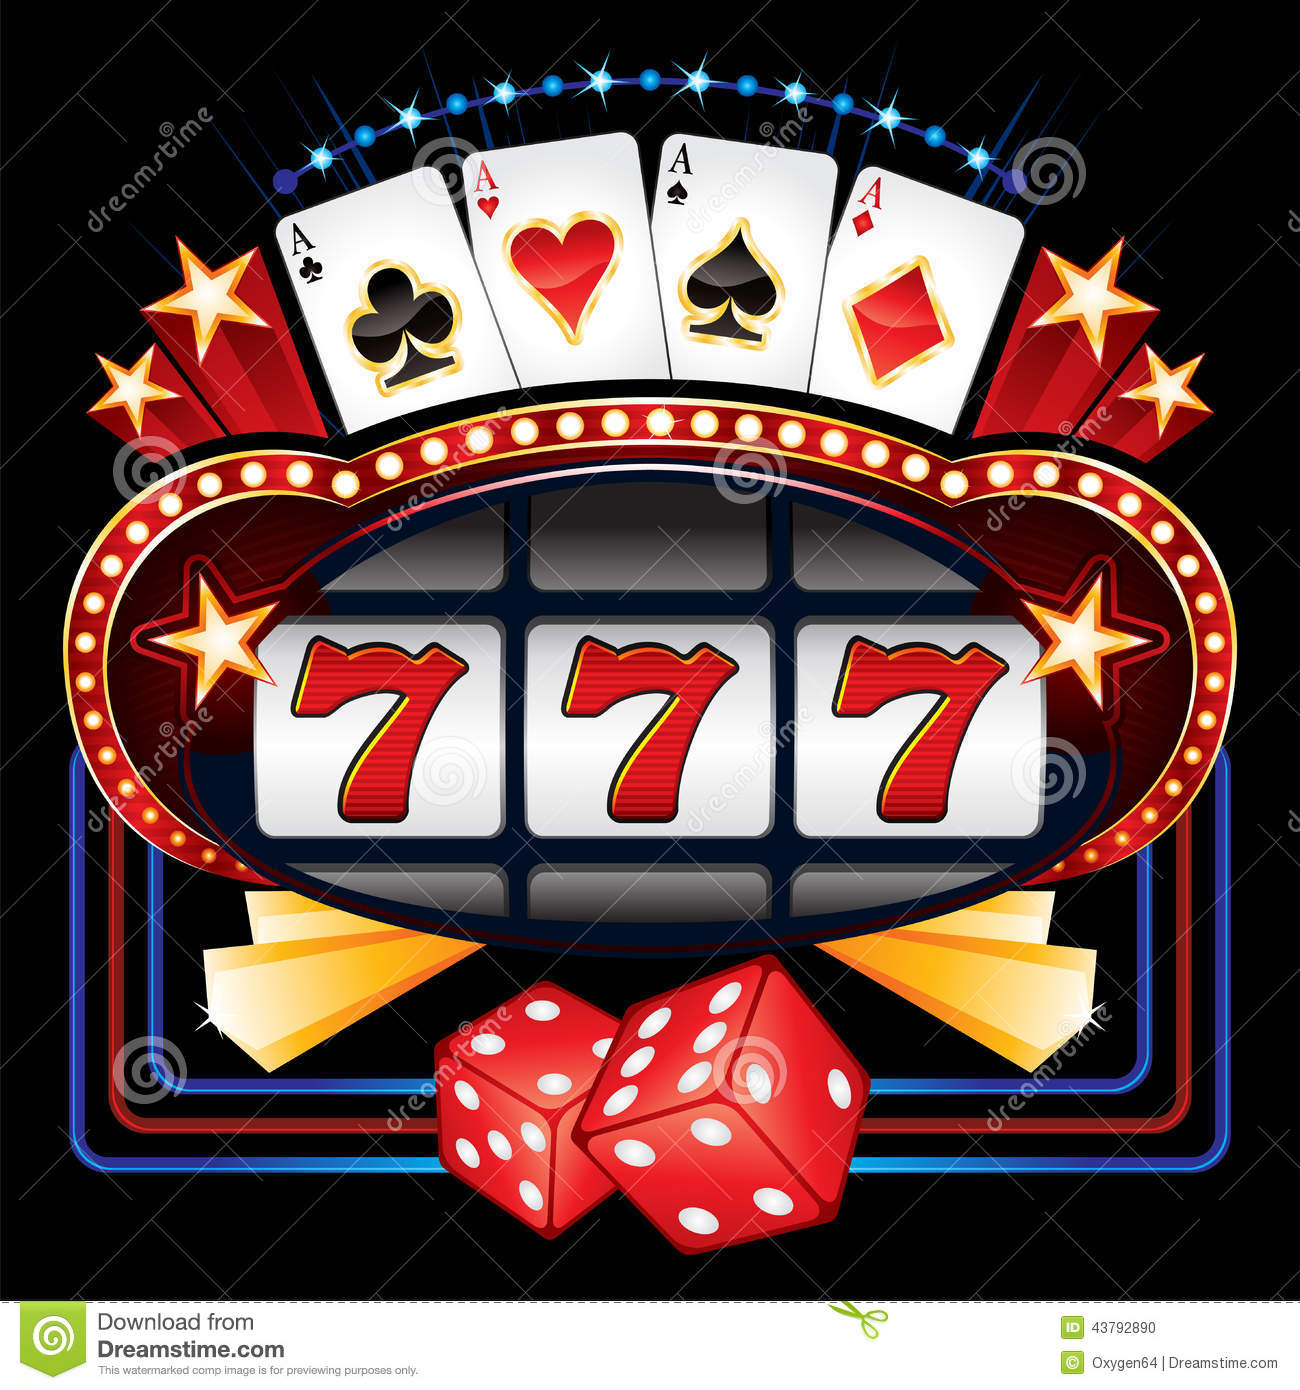 casino-machine-shining-slot-winning-sevens-43792890.jpg